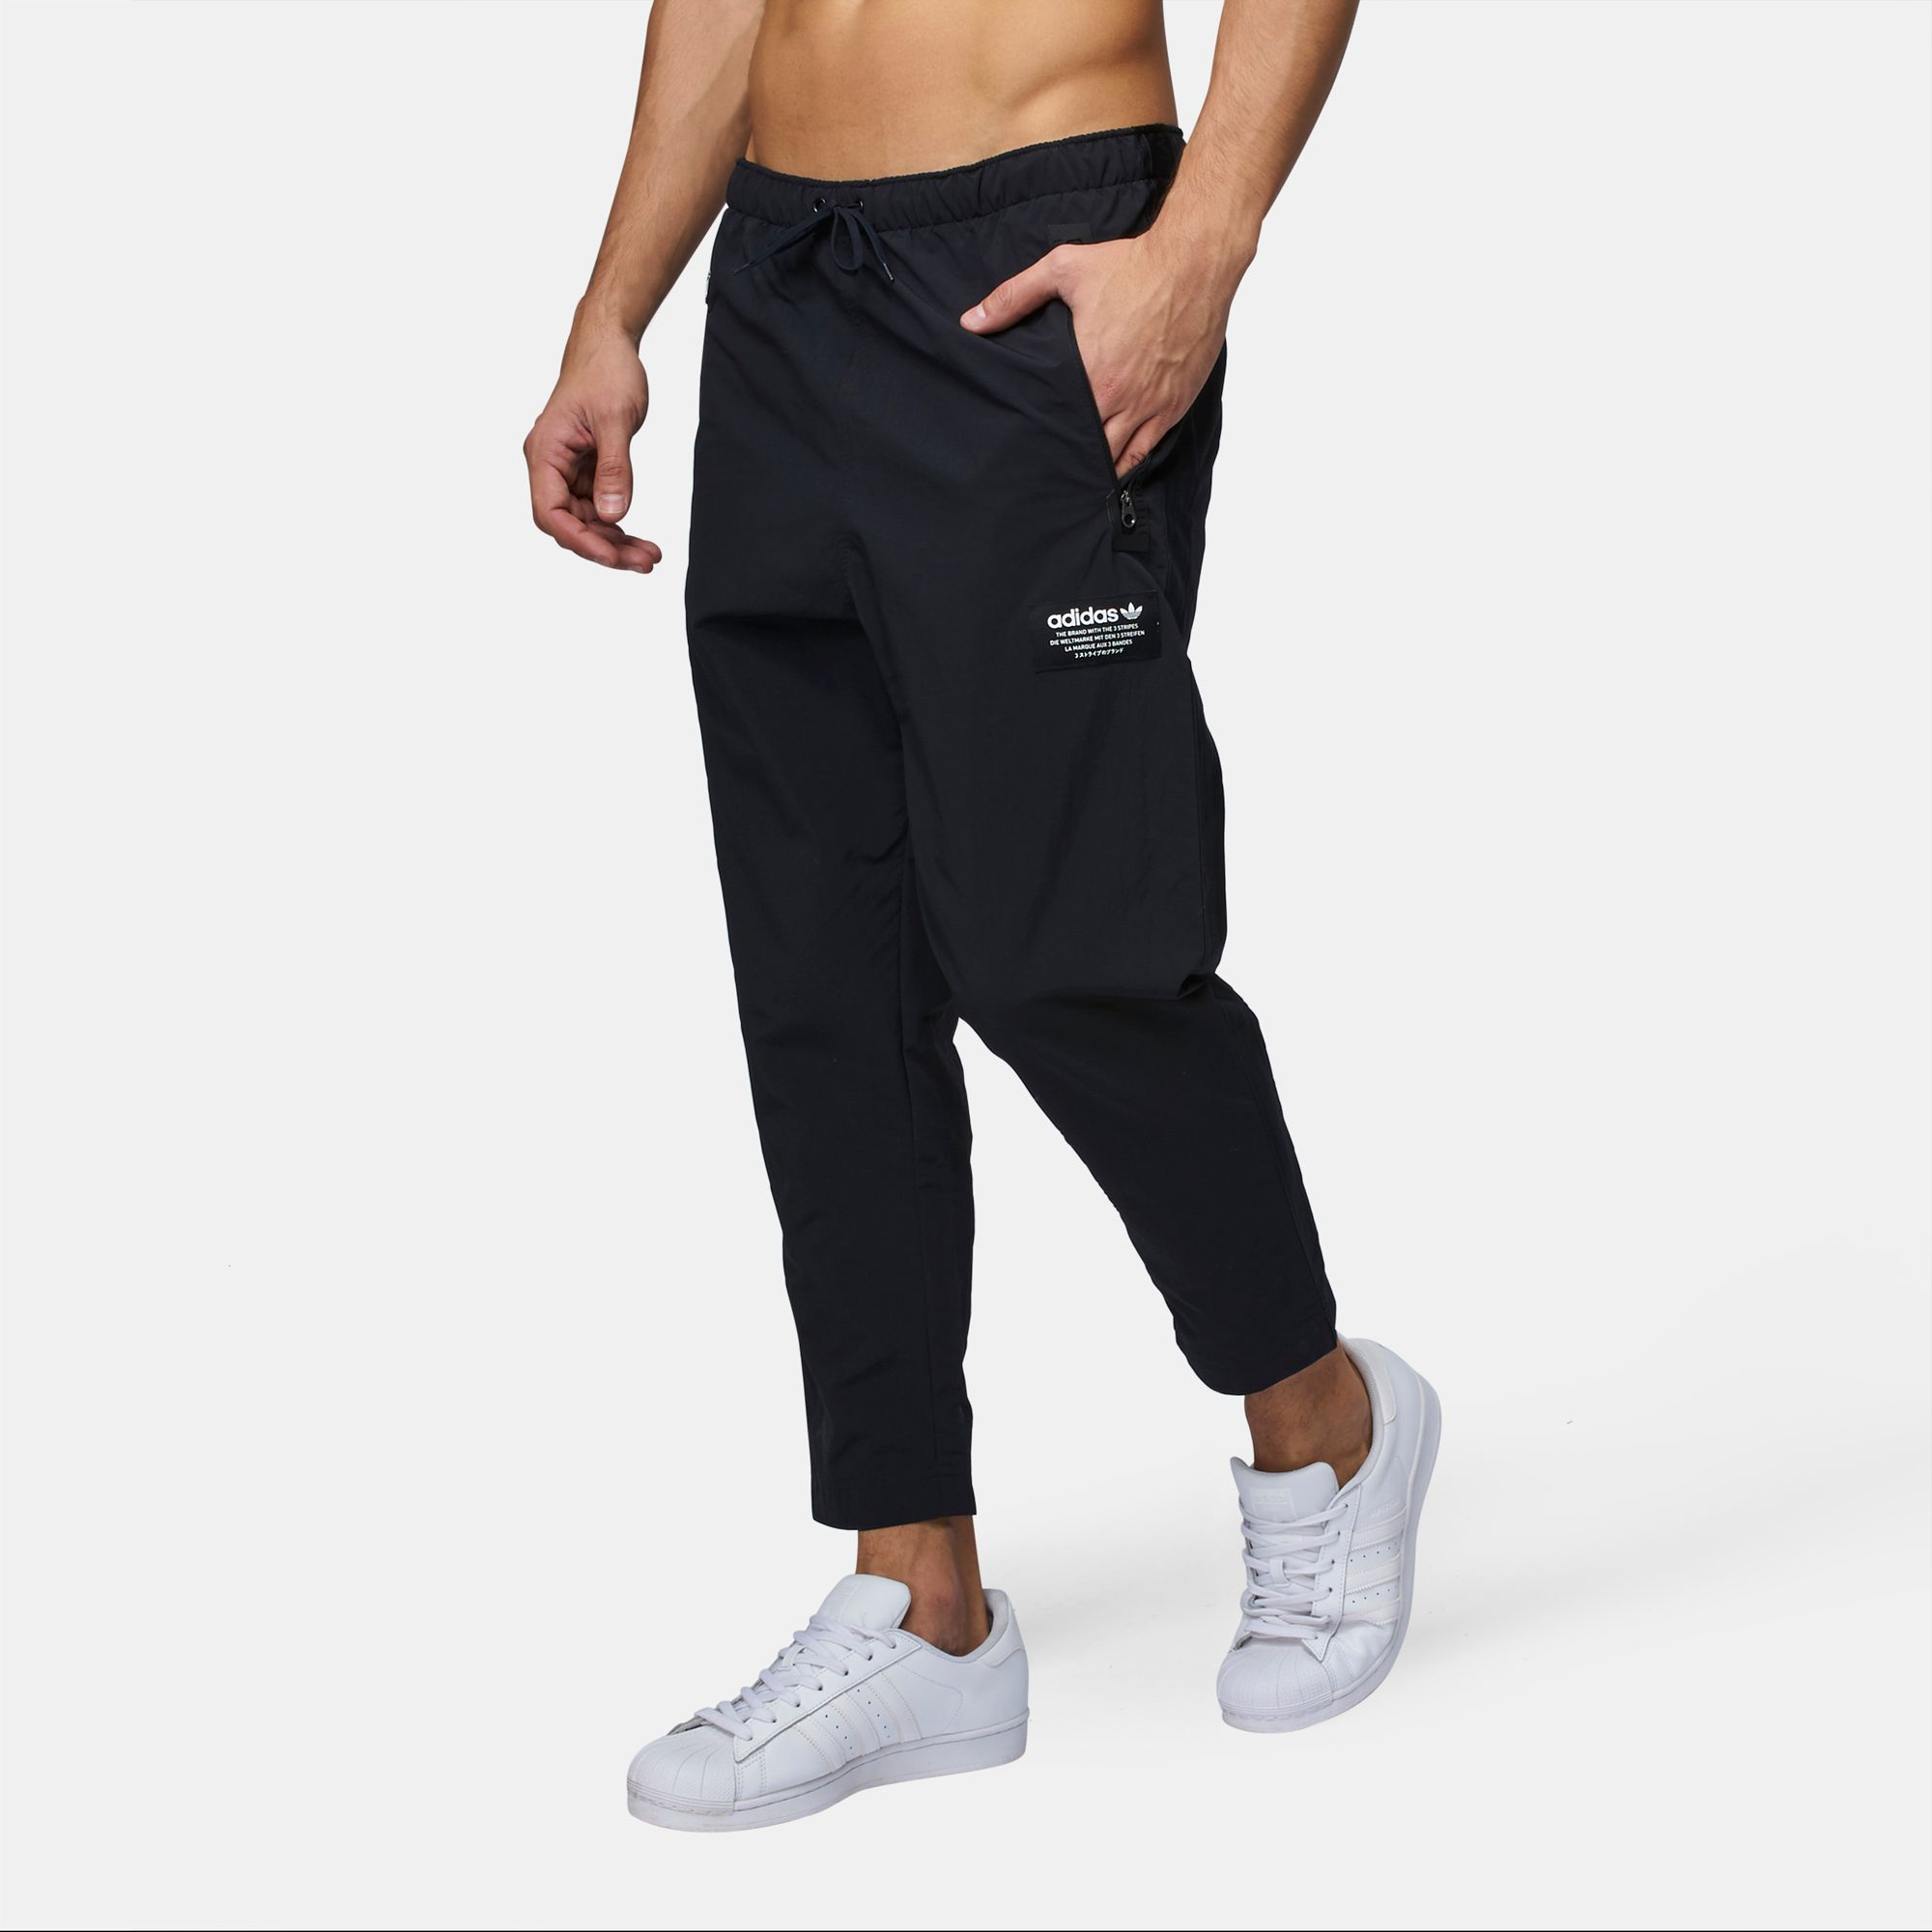 035a26933ed04 adidas Originals NMD Track Pants